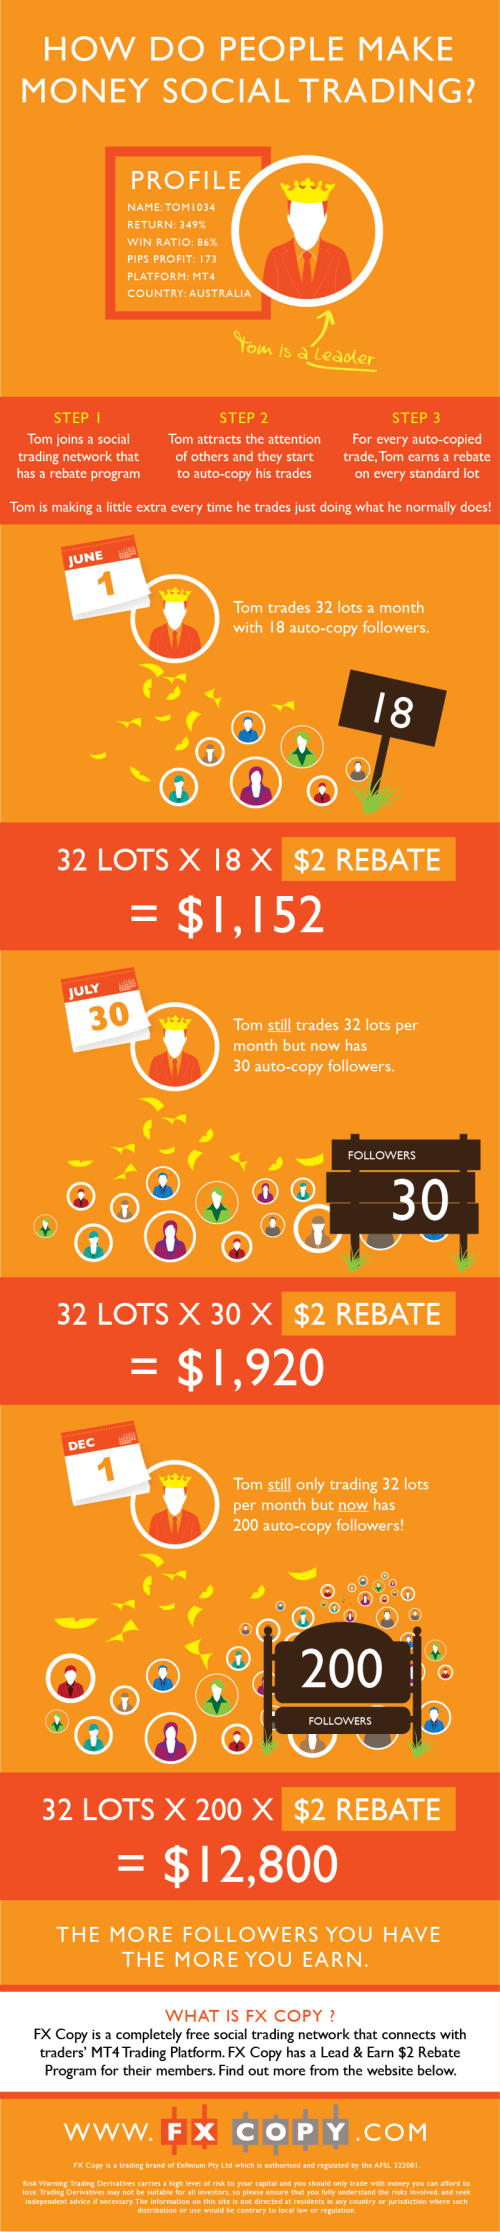 how-do-people-make-money-from-social-trading_51a82f60d7515